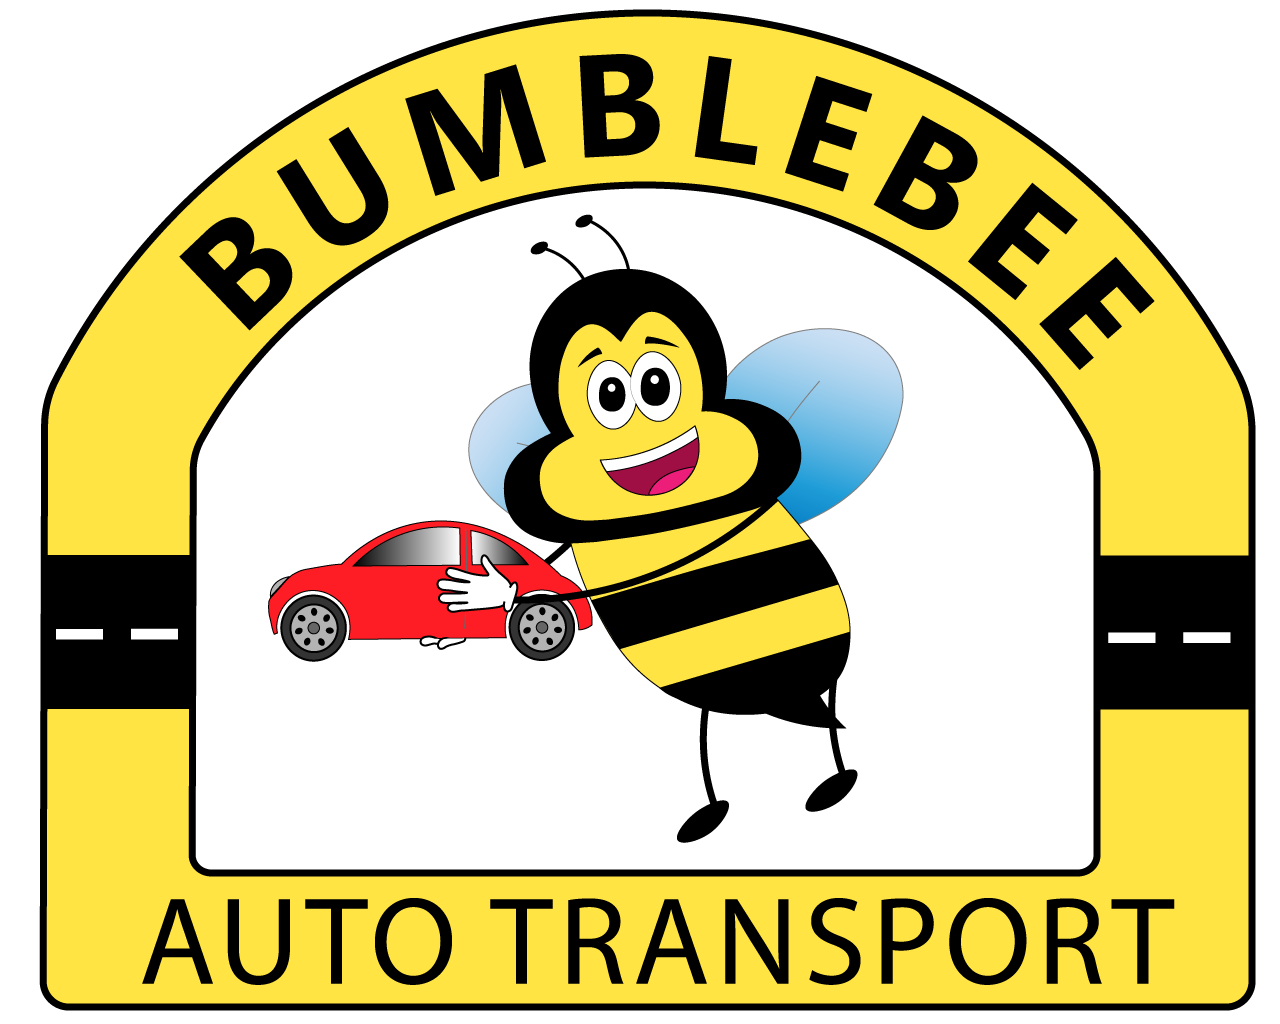 Bumble Bee Auto Transport